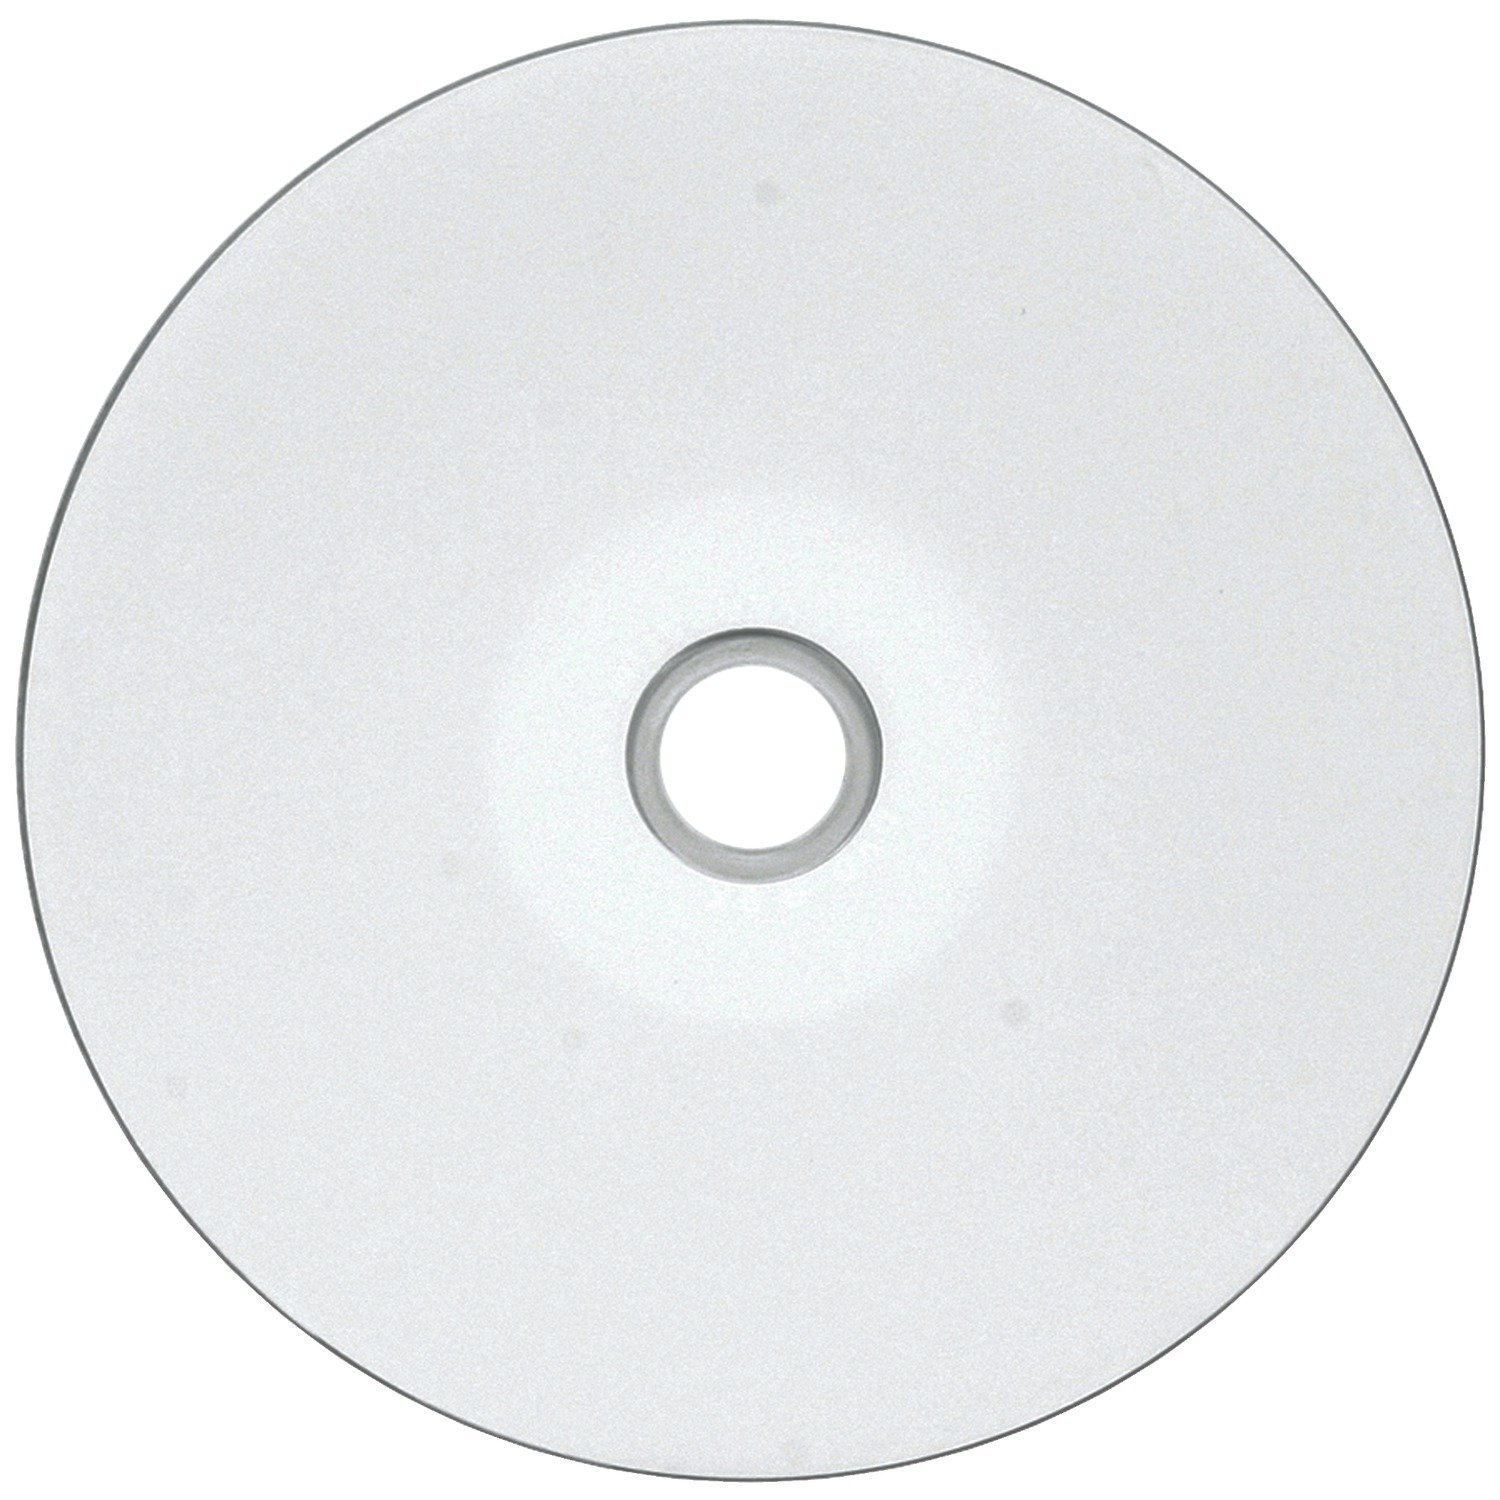 photograph relating to Inkjet Printable Dvd identify Verbatim 97283 4.7gb 120-moment 16x Vx Hub Inkjet Printable Dvd-rs, 50-ct Spindle